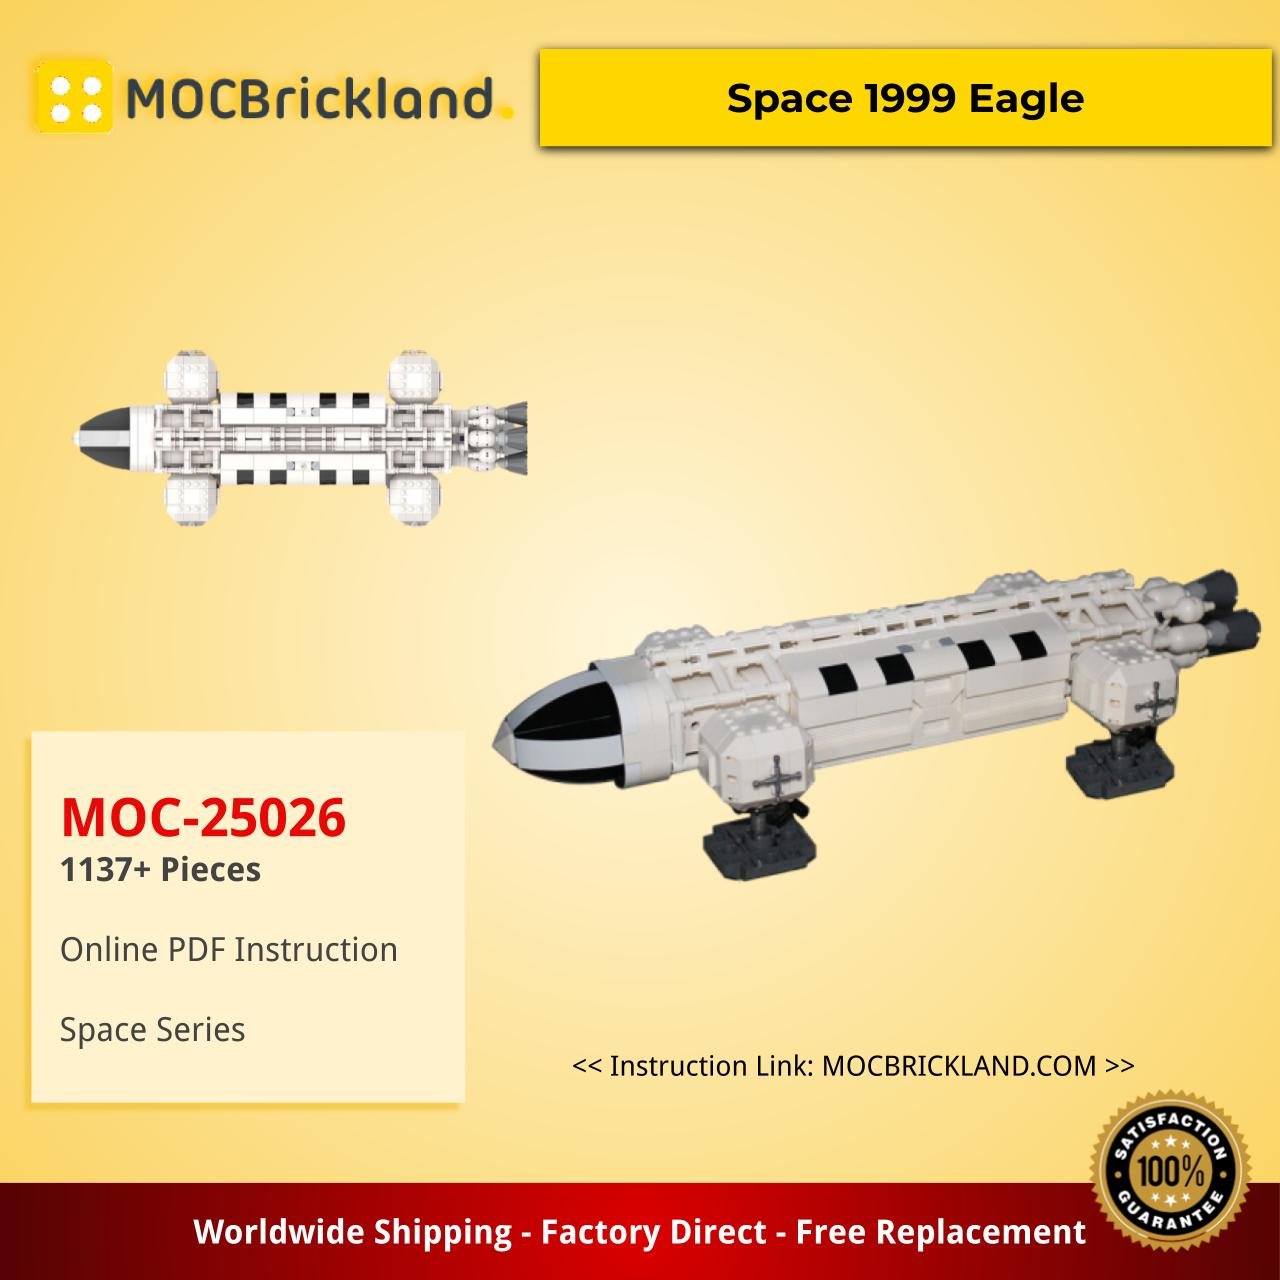 Space MOC-25026 Space 1999 Eagle by divinglog MOCBRICKLAND